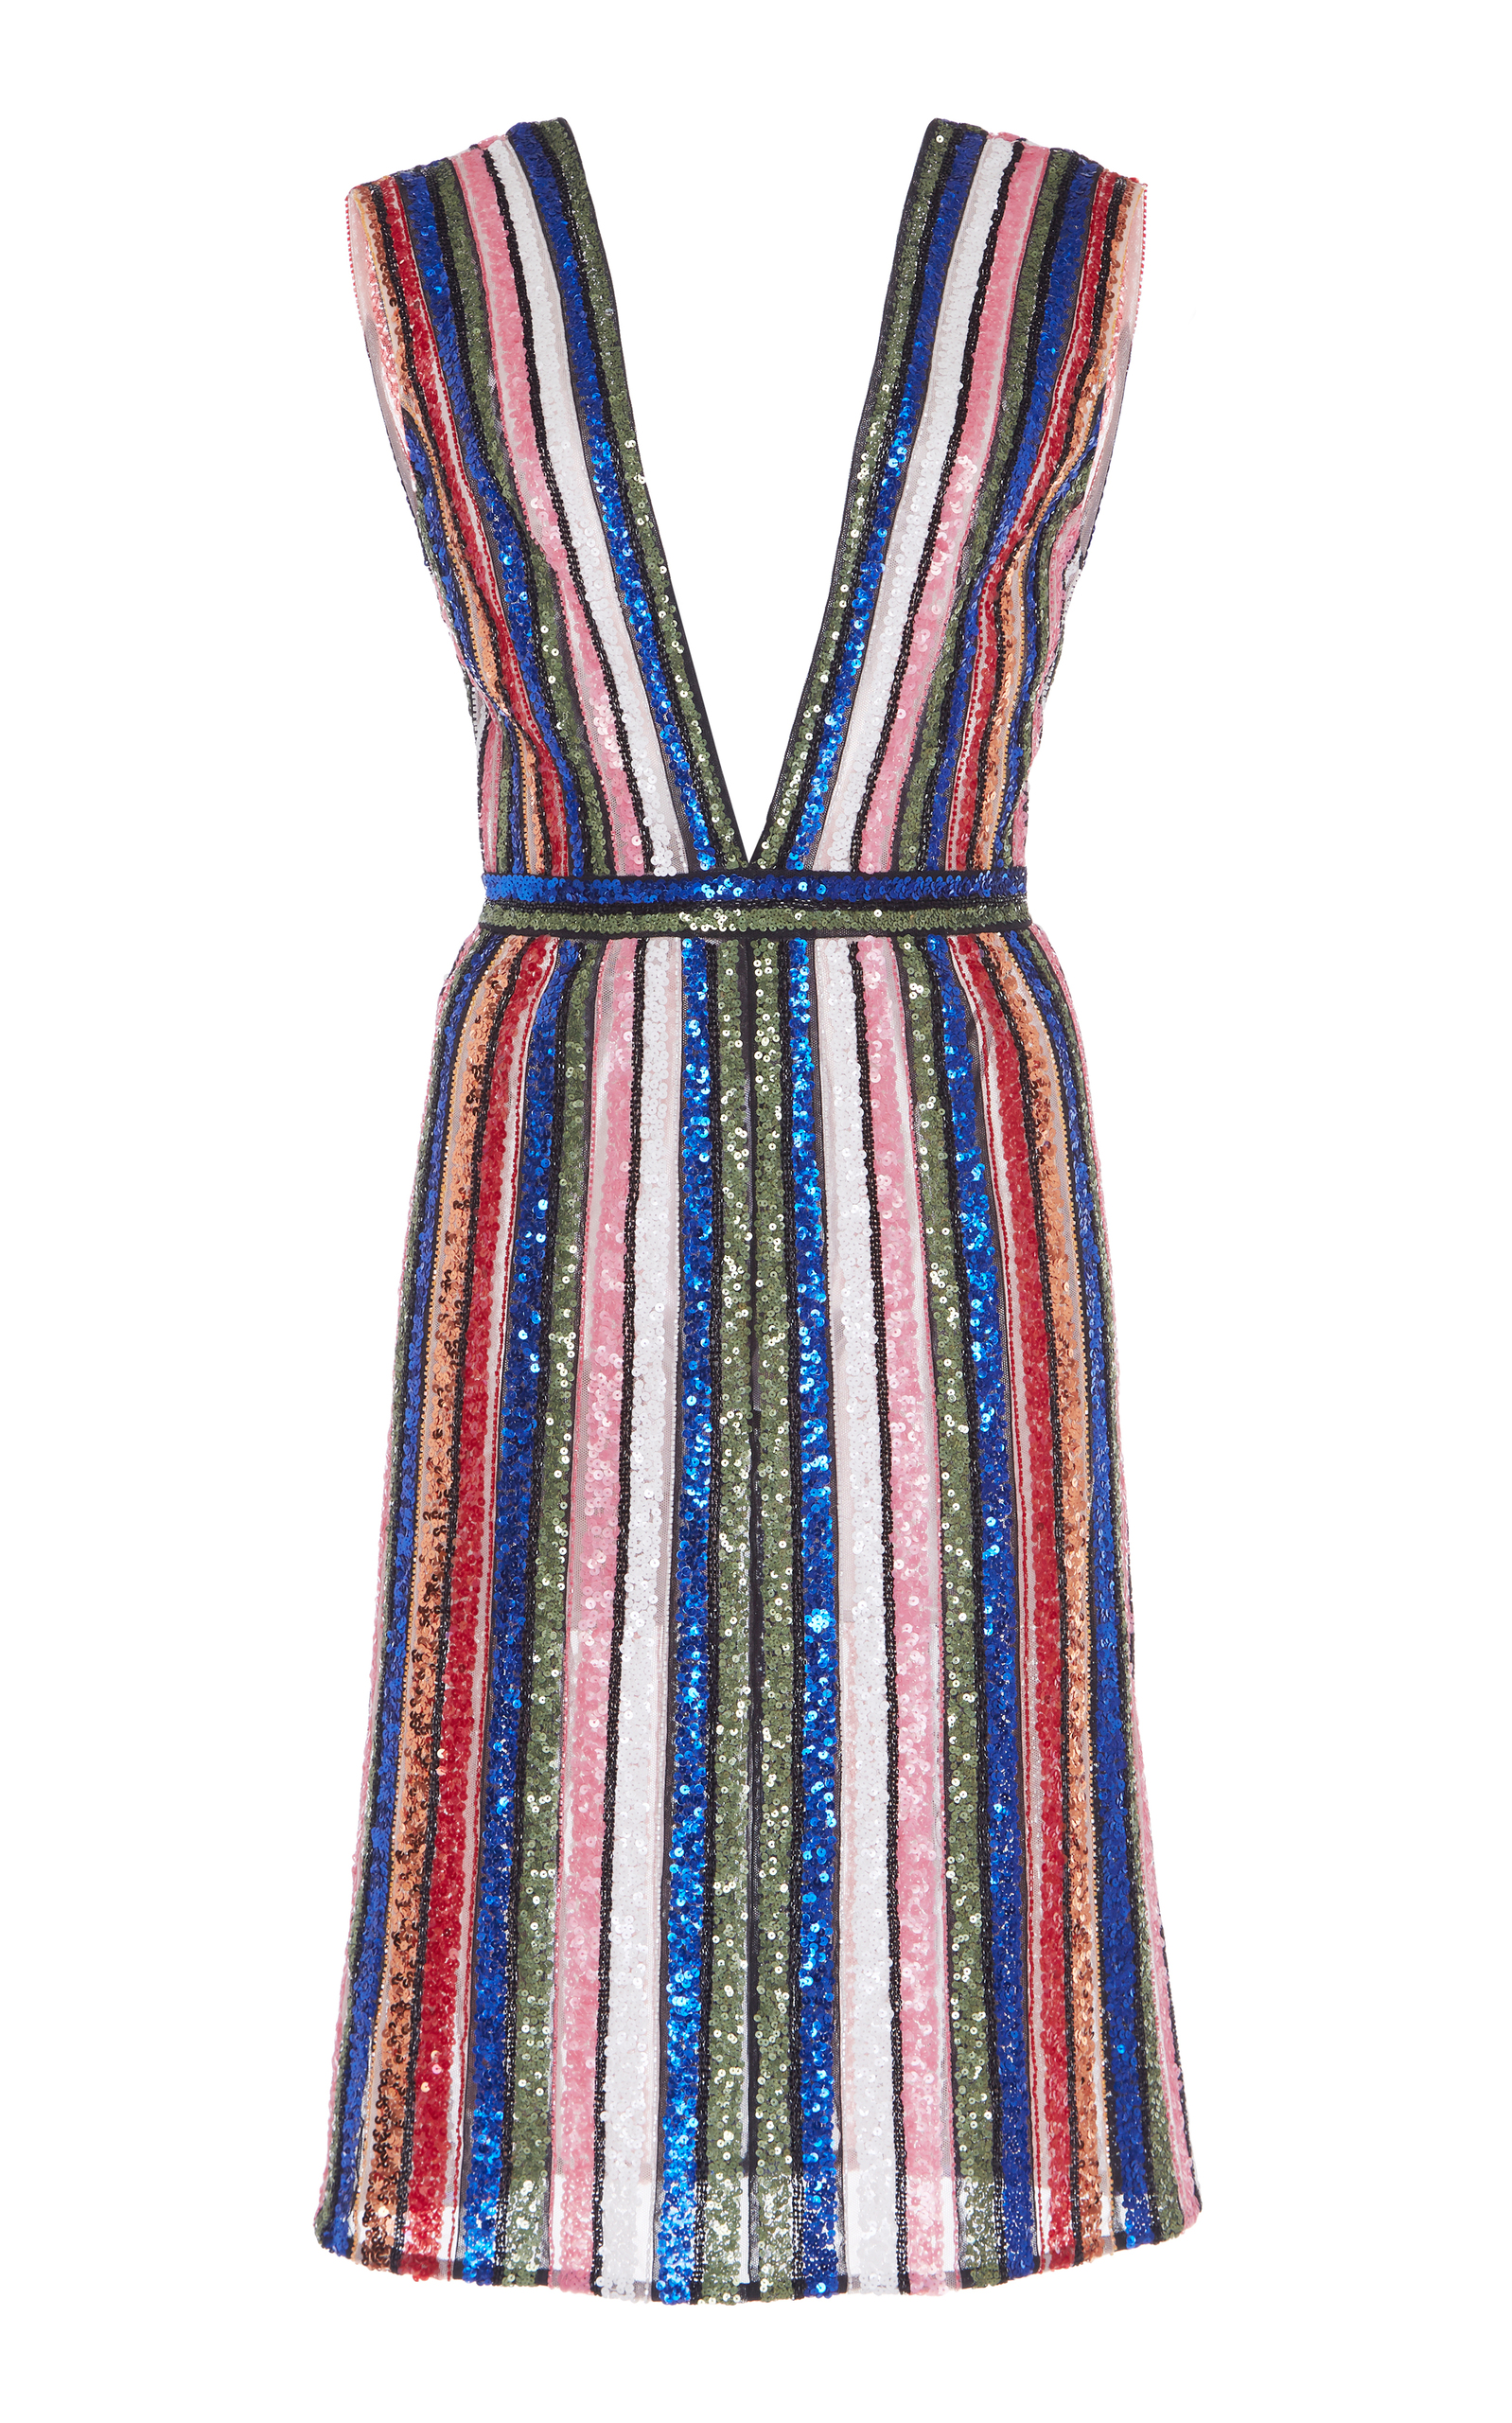 Color of striped dress